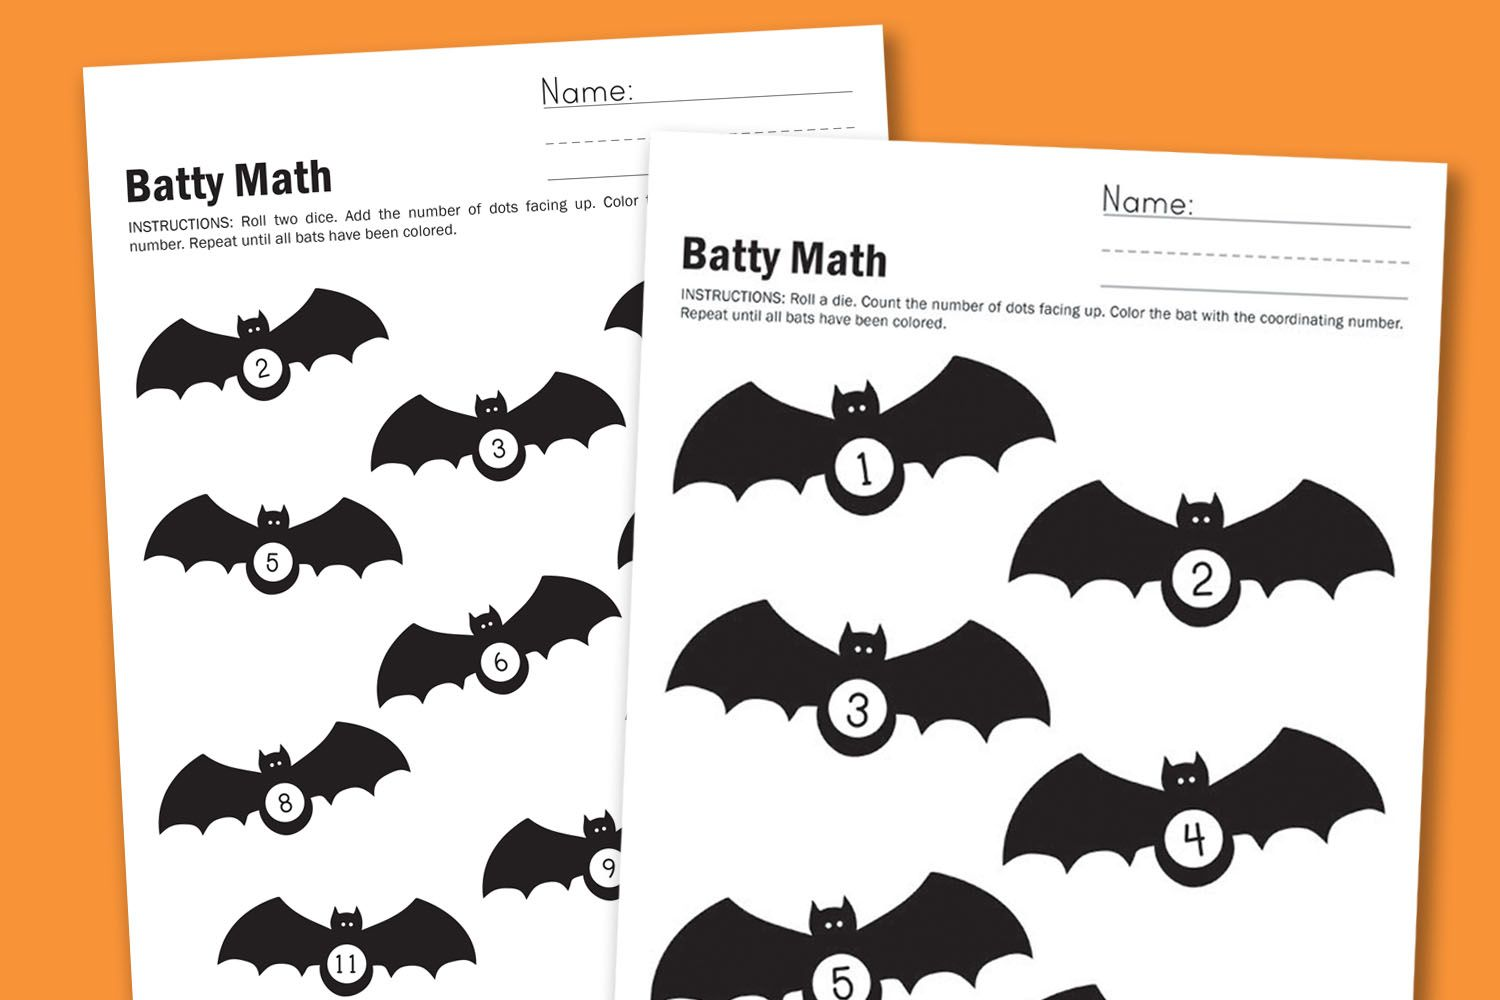 Batty Math Worksheet